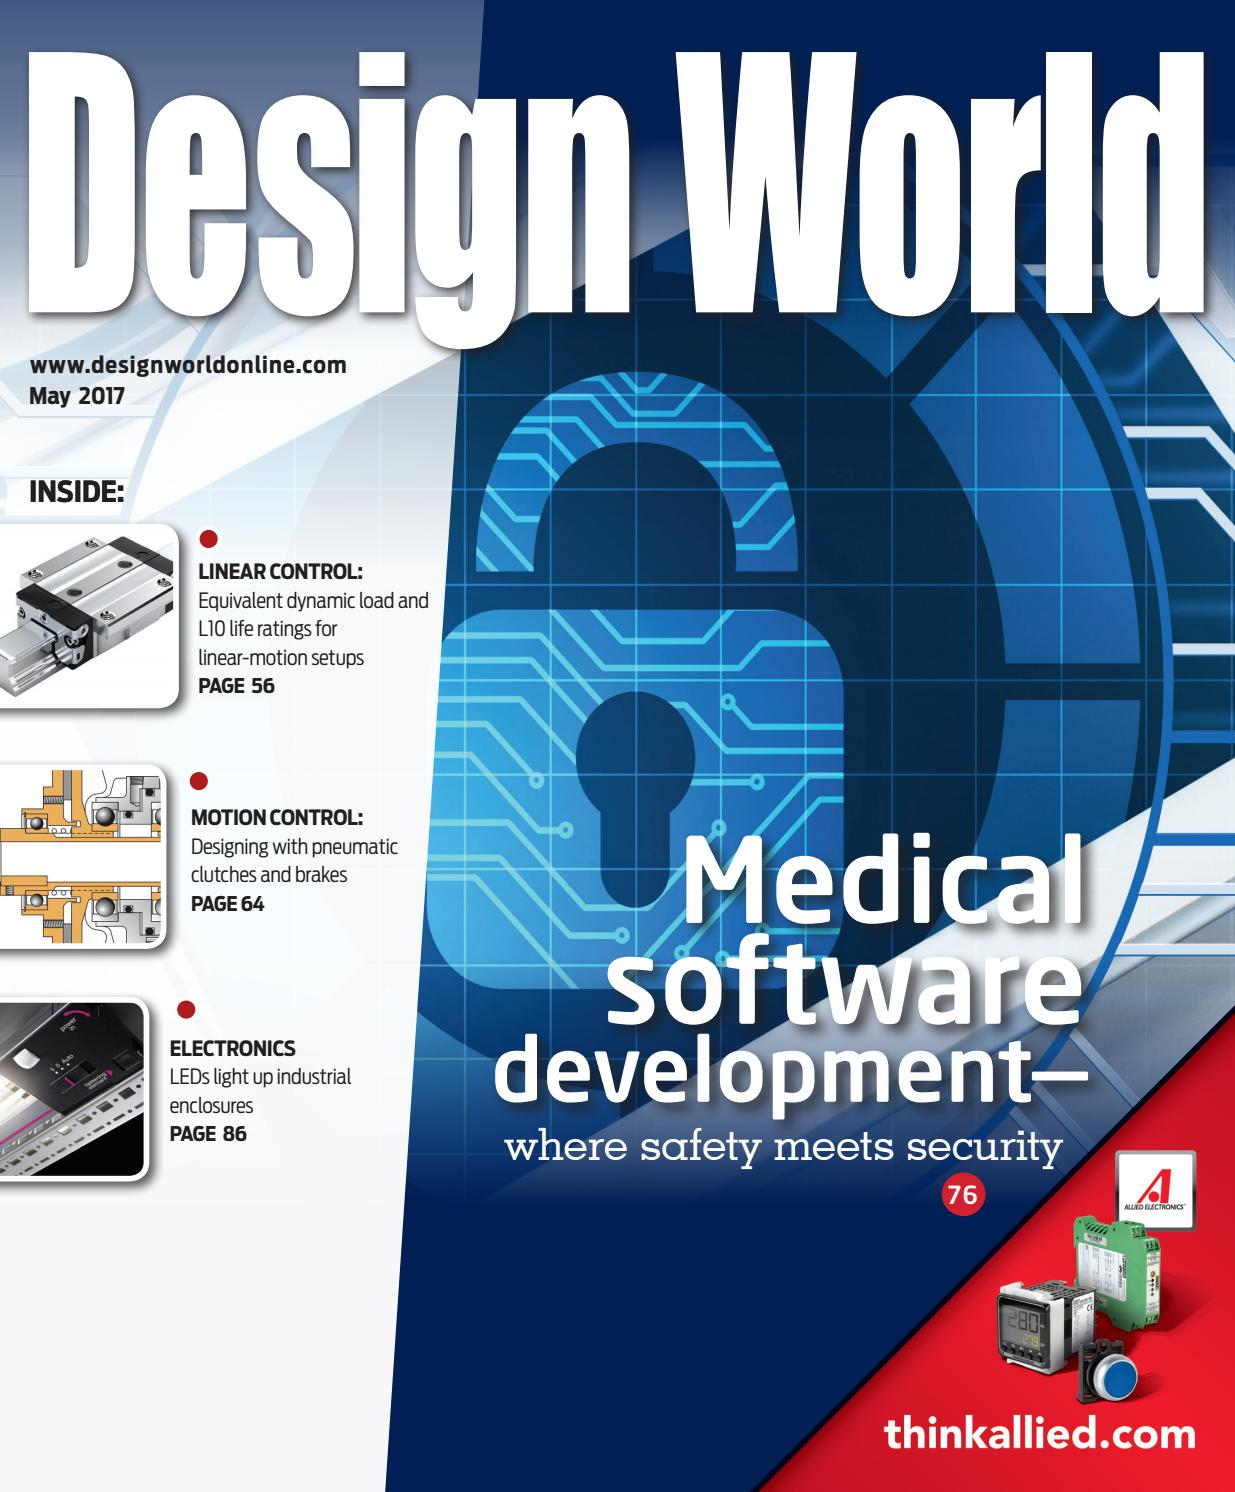 DESIGN WORLD MAY 2017 by WTWH Media LLC - issuu